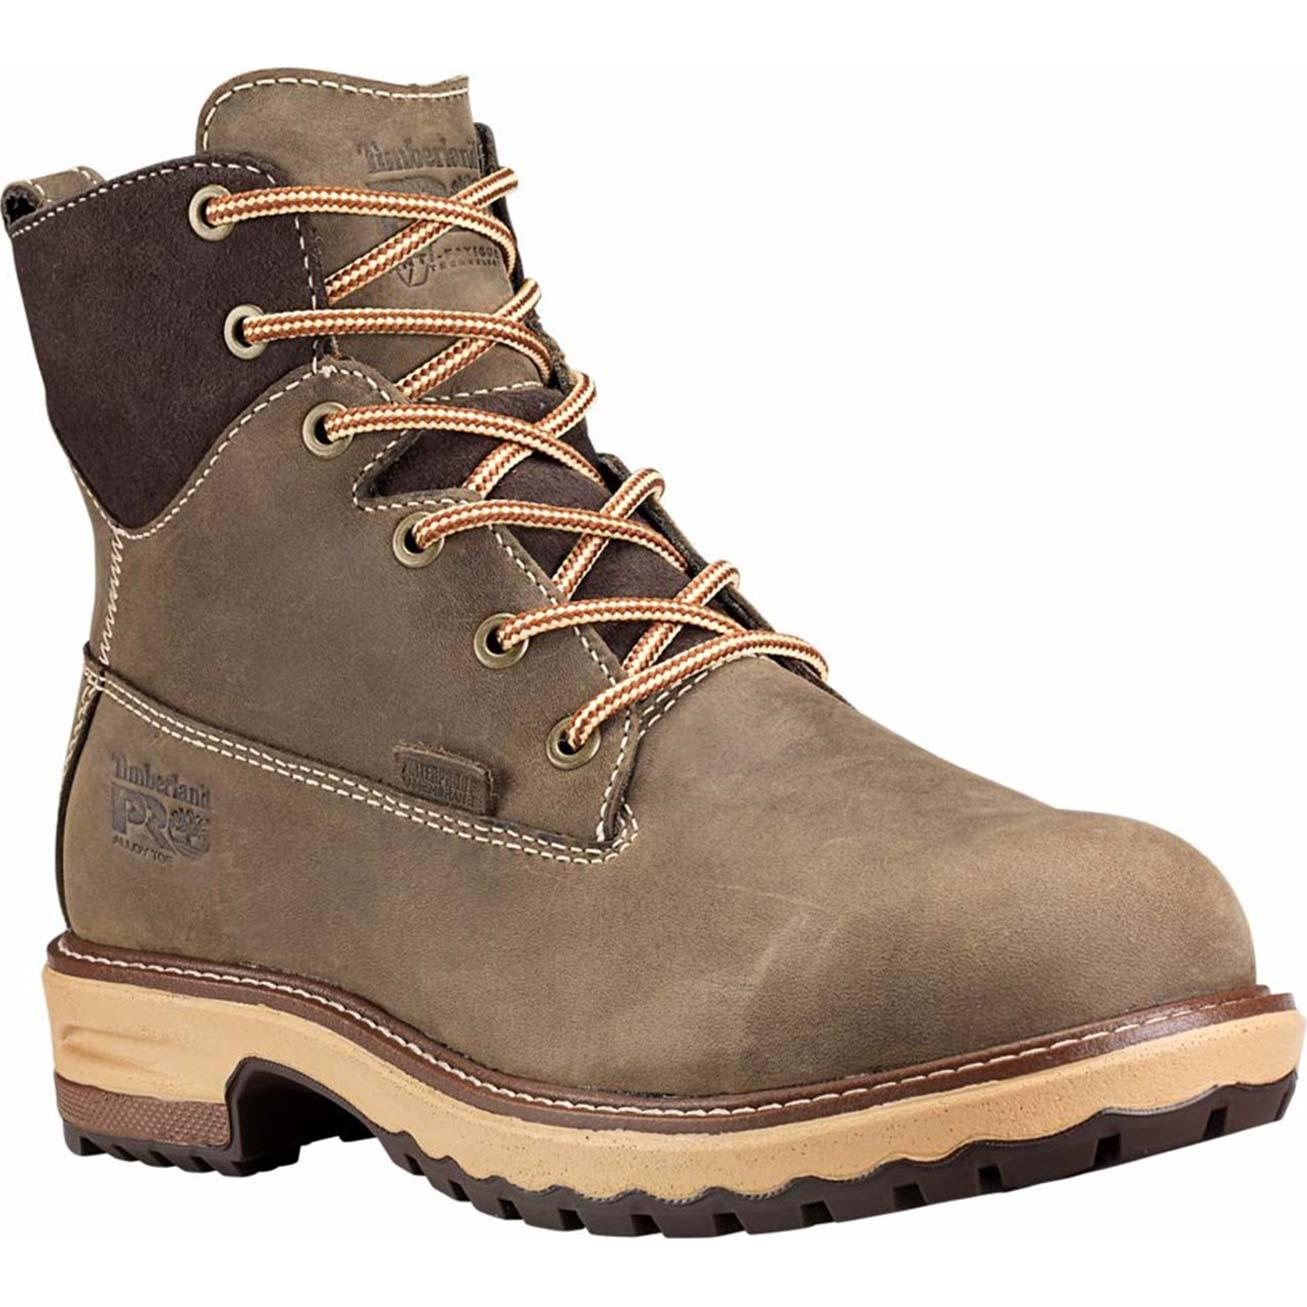 Timberland PRO Hightower Women s Alloy Toe Waterproof Work BootTimberland  PRO Hightower Women s Alloy Toe Waterproof Work Boot 9ee8d0f4e5